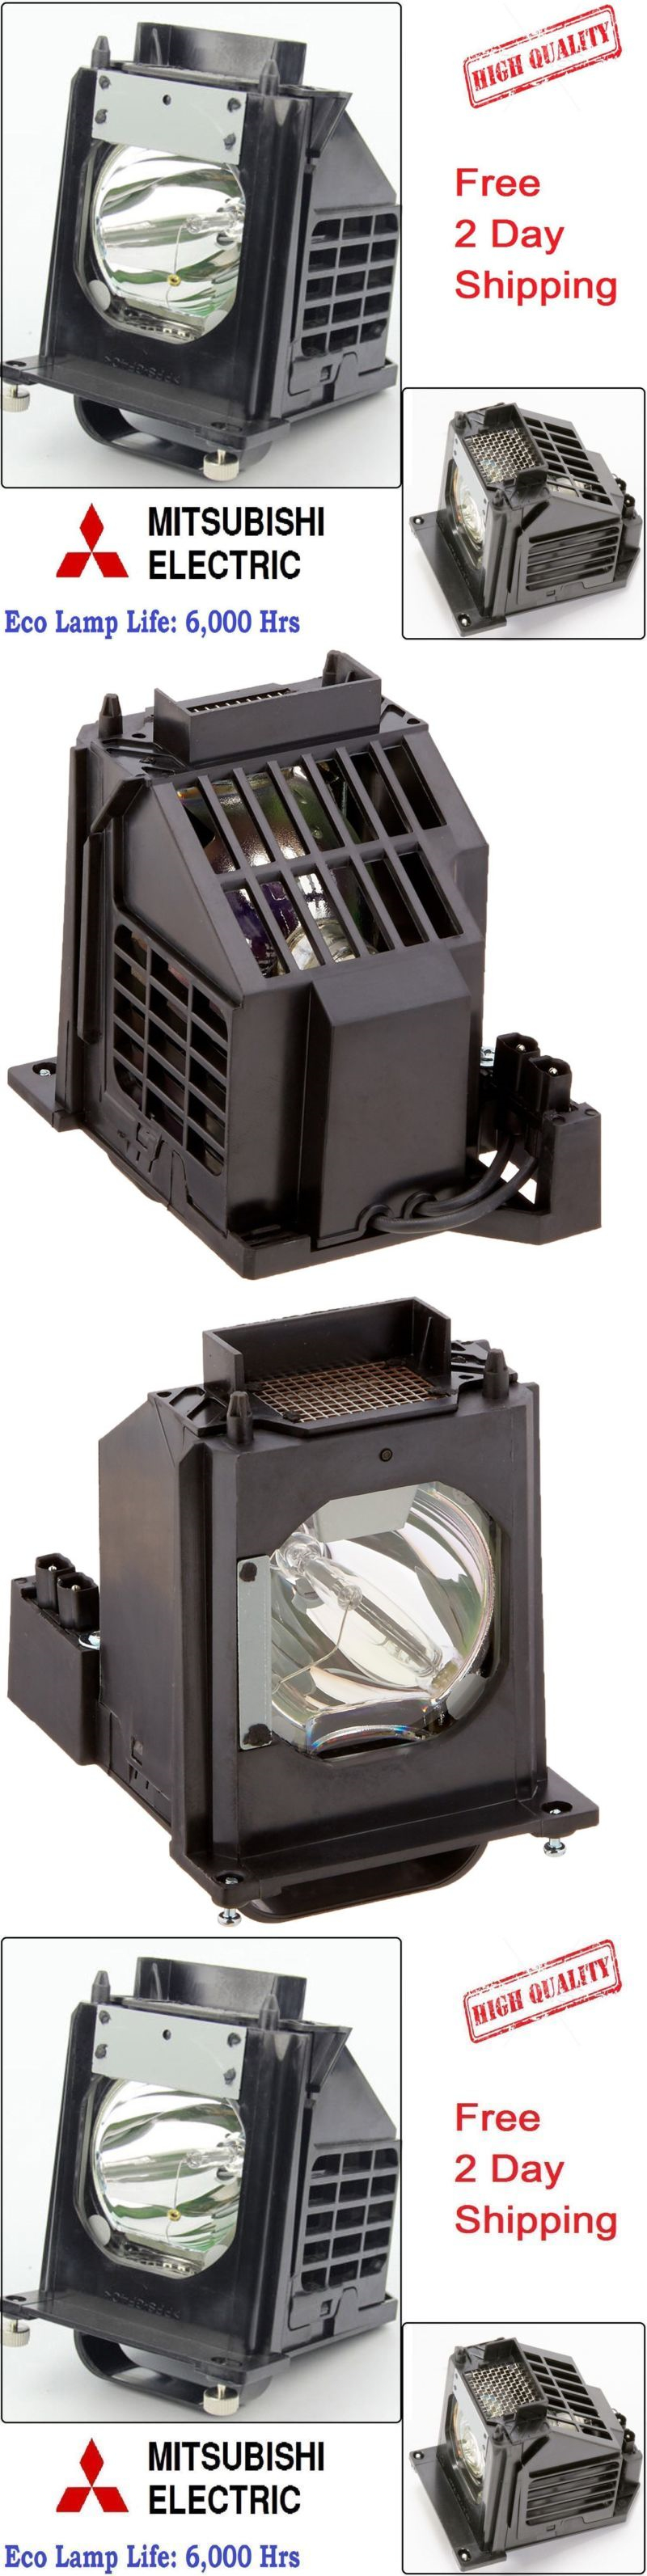 Mitsubishi Projection Tv Bulb Rear Projection Tv Lamps Mitsubishi Wd 73737 Tv Lamp 915b403001